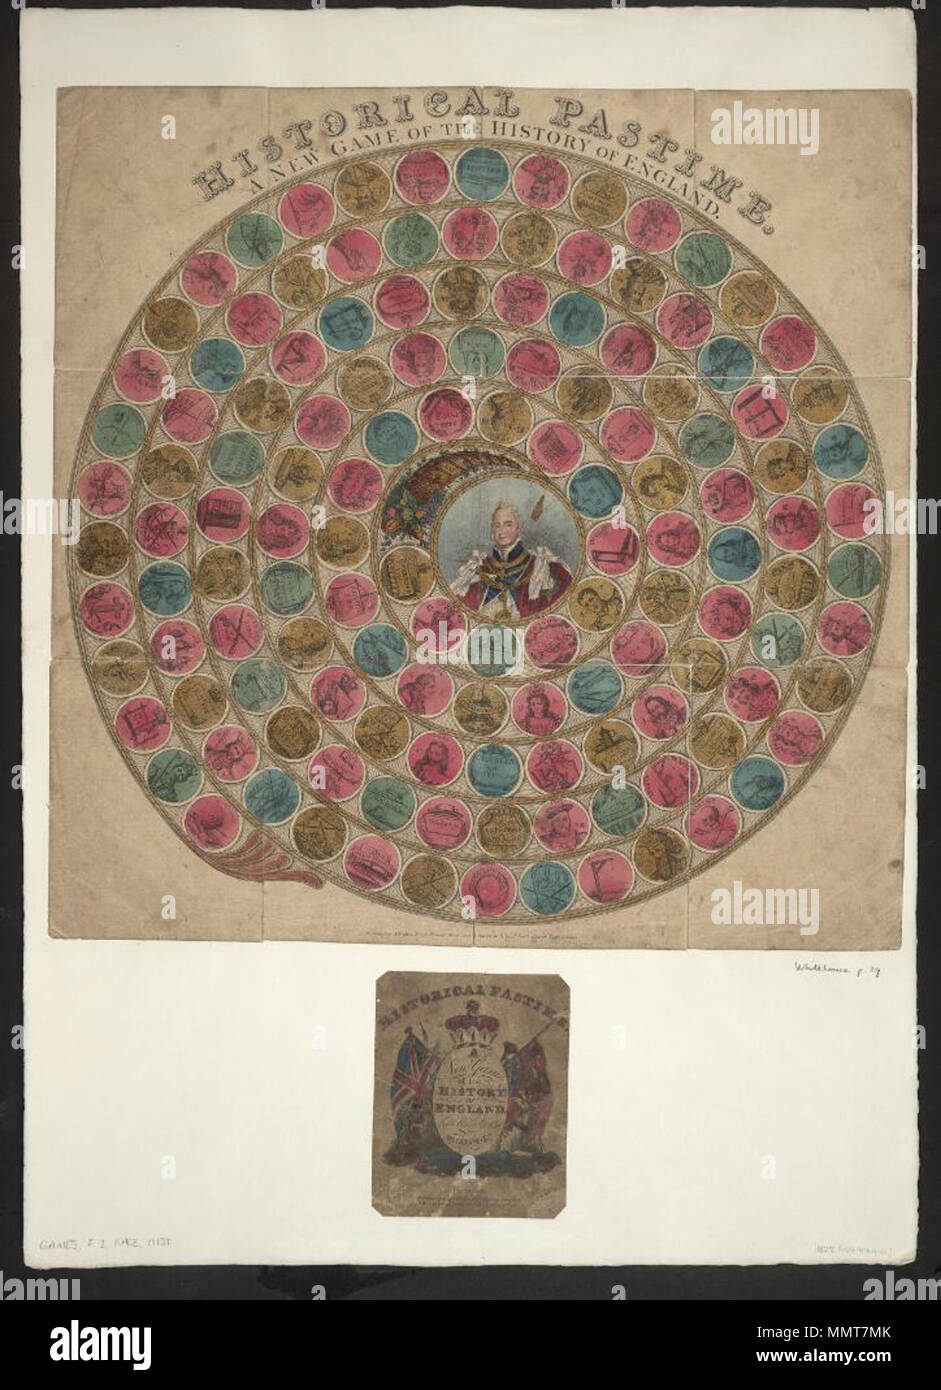 . Game entitled Historical pastime. A new game of the history of England from William 1st to William 4th; has 134 circles. First 20 transcribed as examples; New game of the history of England from William 1st to William 4th; Hastings (1); 1066 W I (2); Doomsday book (3); New Forest (4); Holy Lane (5); 1087 W II (6); Robert D. of Normandy (7); Death of W II (8); 1100 Henry I (9); 1135 K. S. (11); War (12); Matilda (13); 1154 H II (14); Alexander (15); BBeckett [sic] (16); 1189 R I (17); Massacre of the Jews (18); 1199 K J. (19); Prince Arthur (20); Interdict (21); Historical pastime. A new game - Stock Image